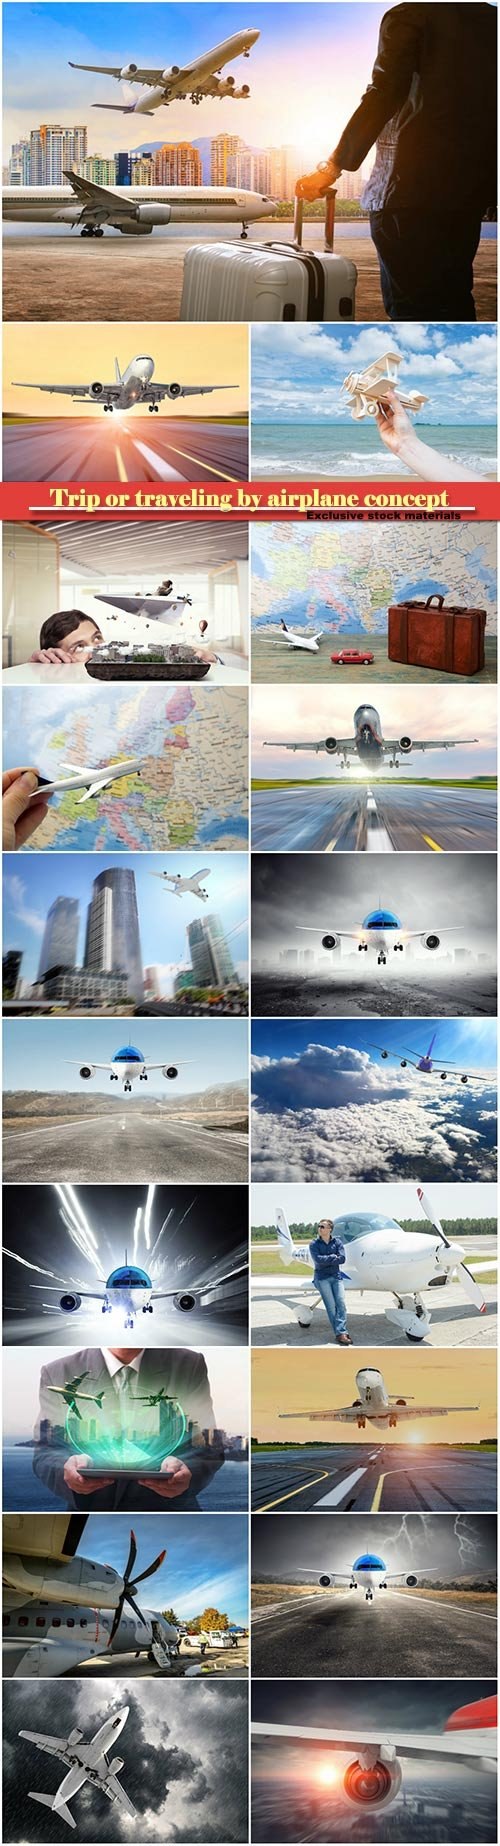 Trip or traveling by airplane concept